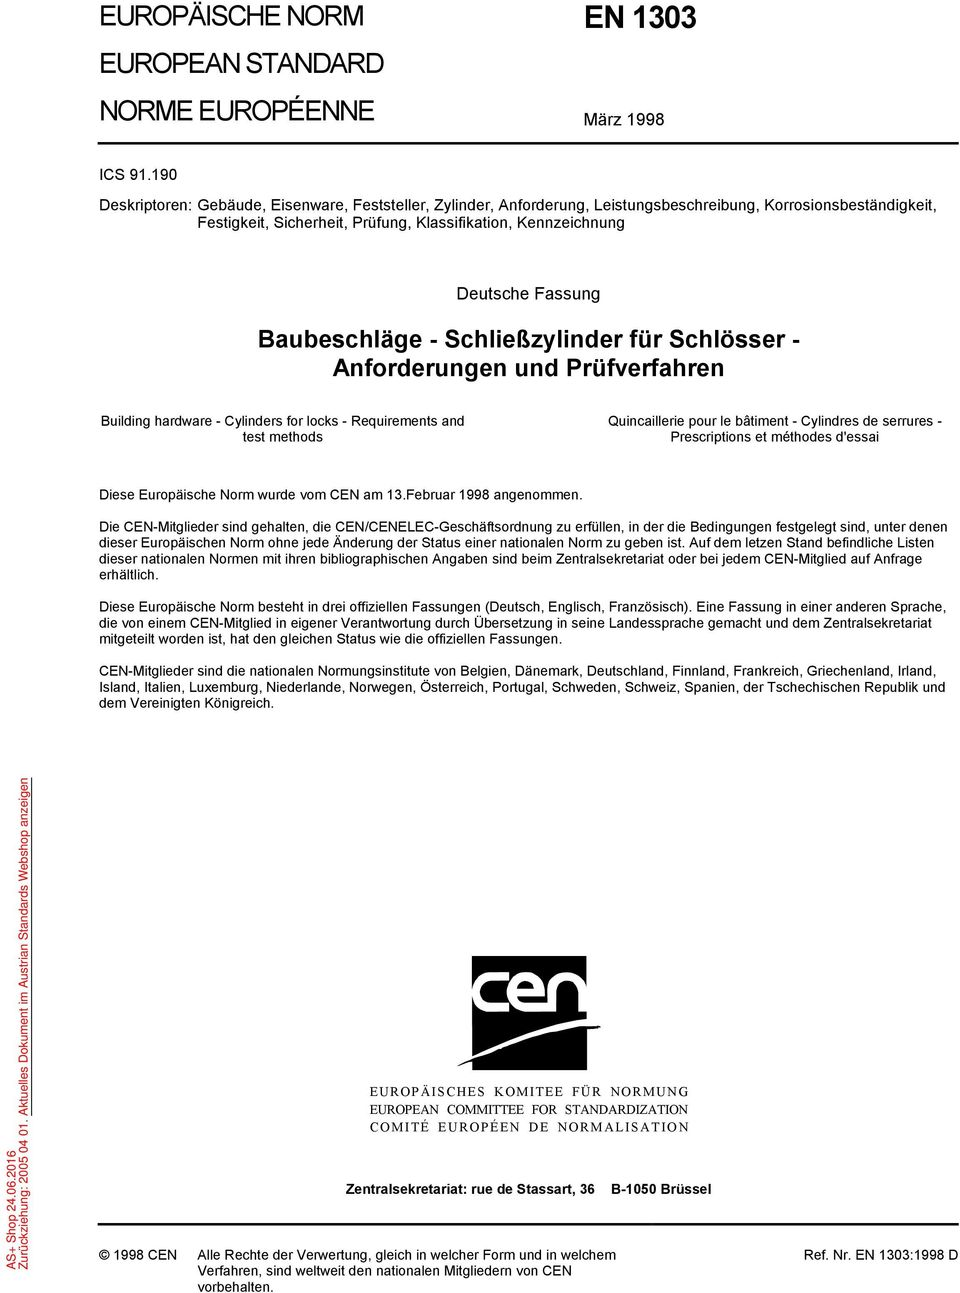 Fassung Baubeschläge - Schließzylinder für Schlösser - Anforderungen und Prüfverfahren Building hardware - Cylinders for locks - Requirements and test methods Quincaillerie pour le bâtiment -